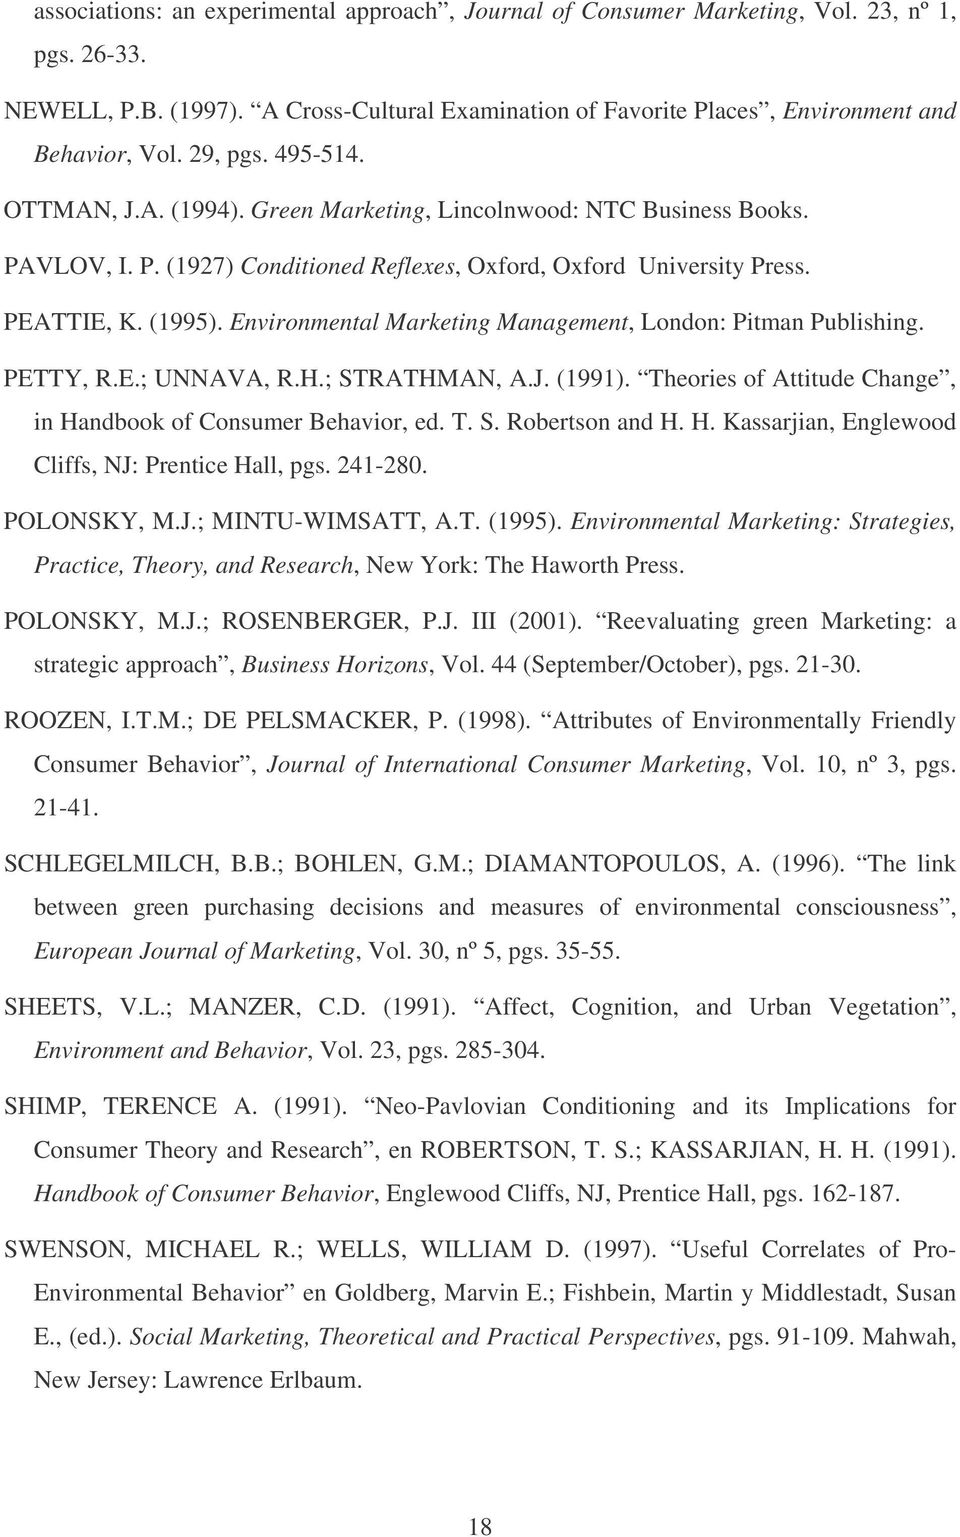 Environmental Marketing Management, London: Pitman Publishing. PETTY, R.E.; UNNAVA, R.H.; STRATHMAN, A.J. (1991). Theories of Attitude Change, in Handbook of Consumer Behavior, ed. T. S. Robertson and H.